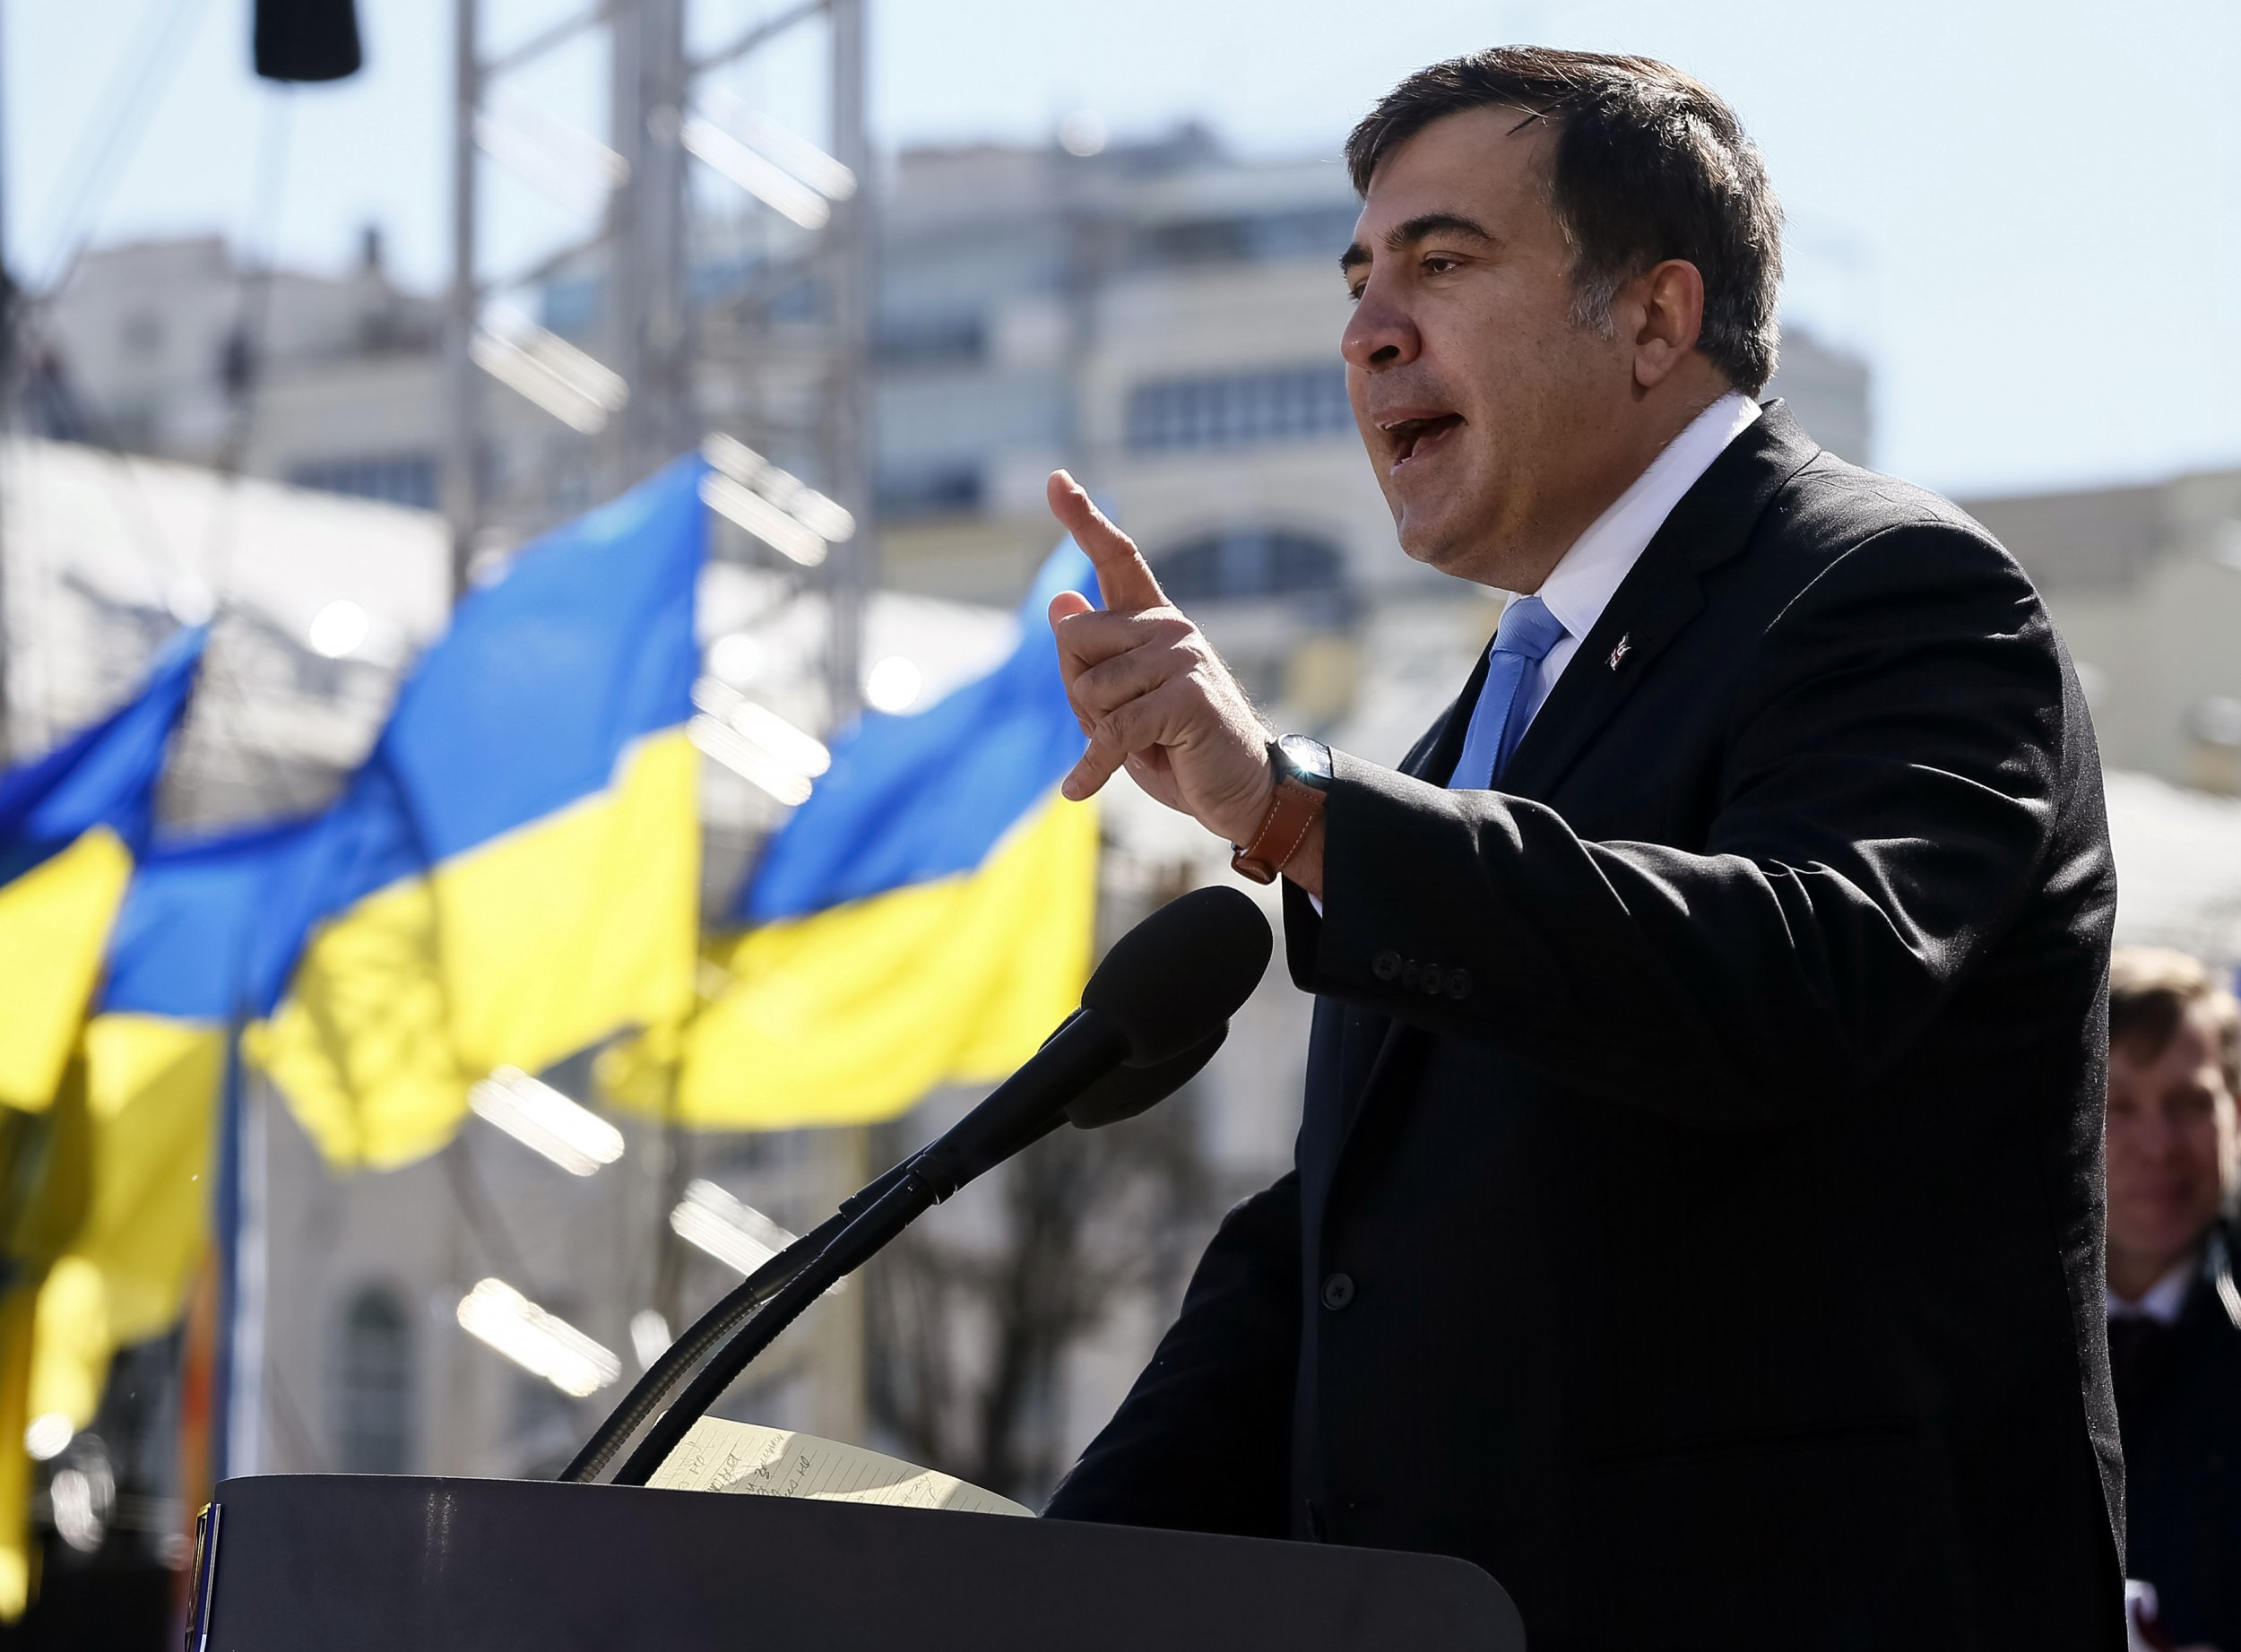 Mikhail Saakashvili in Ukraine